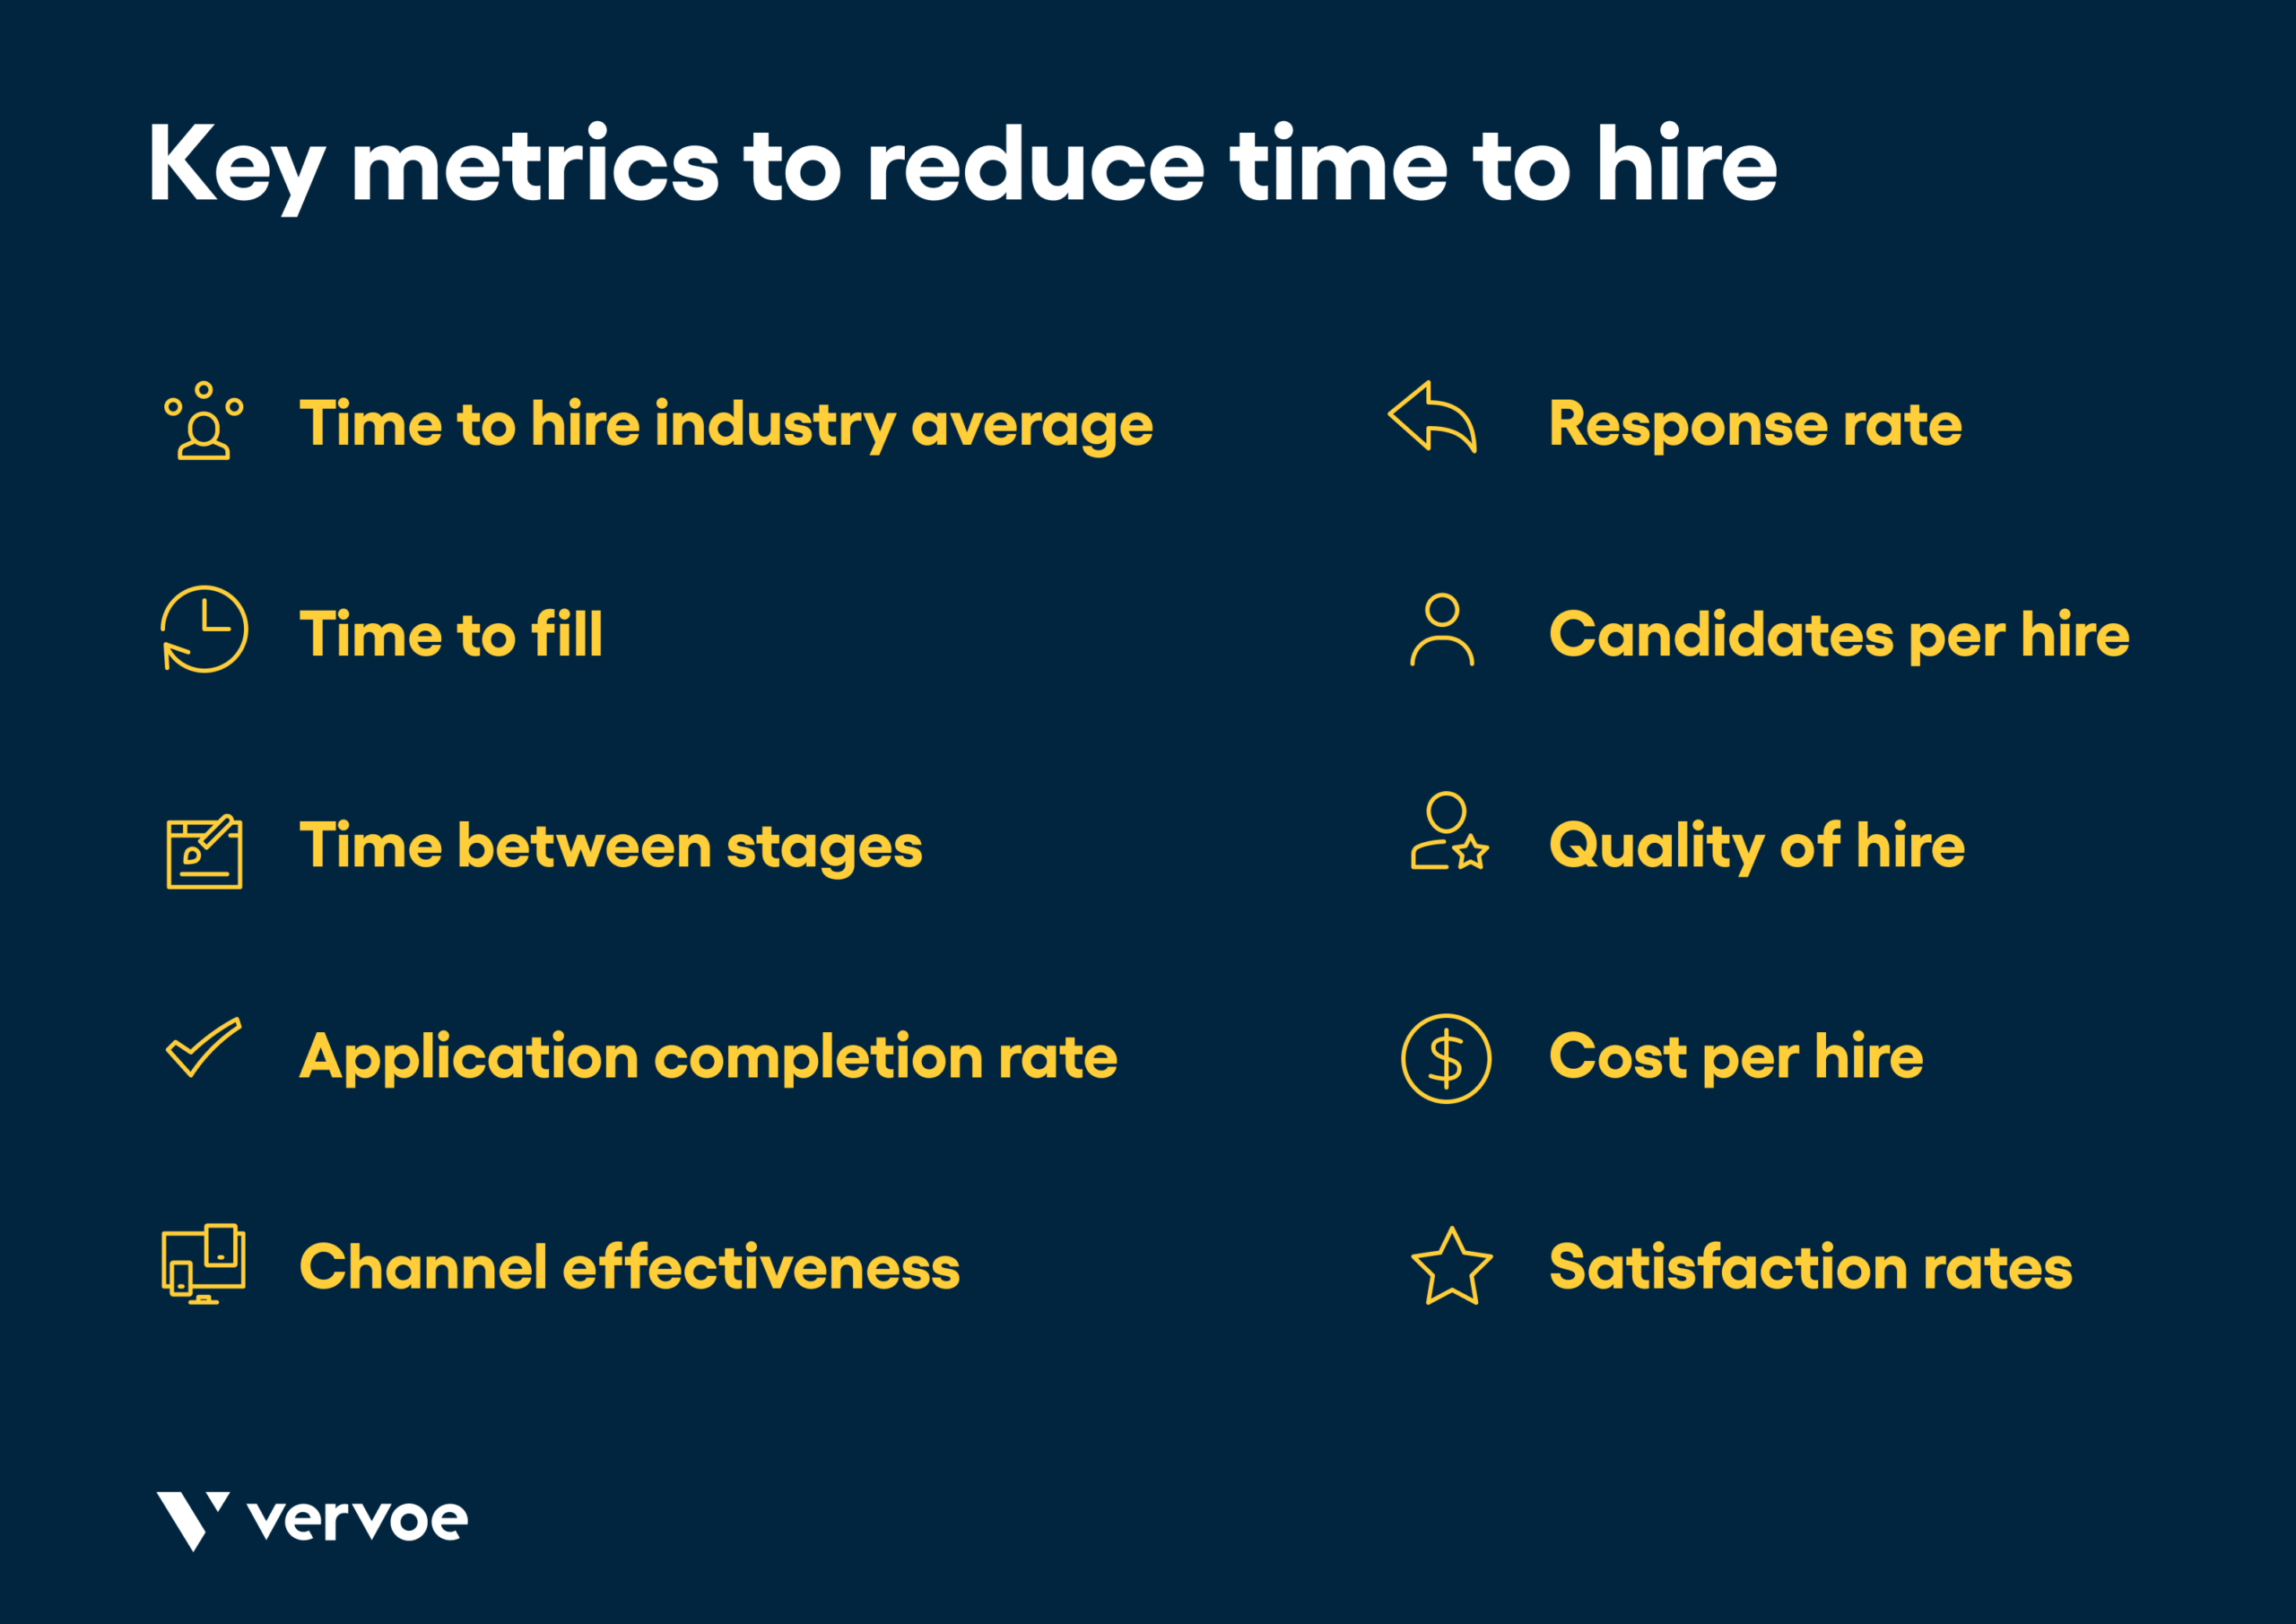 Infographic showing key metrics to reducing time to hire